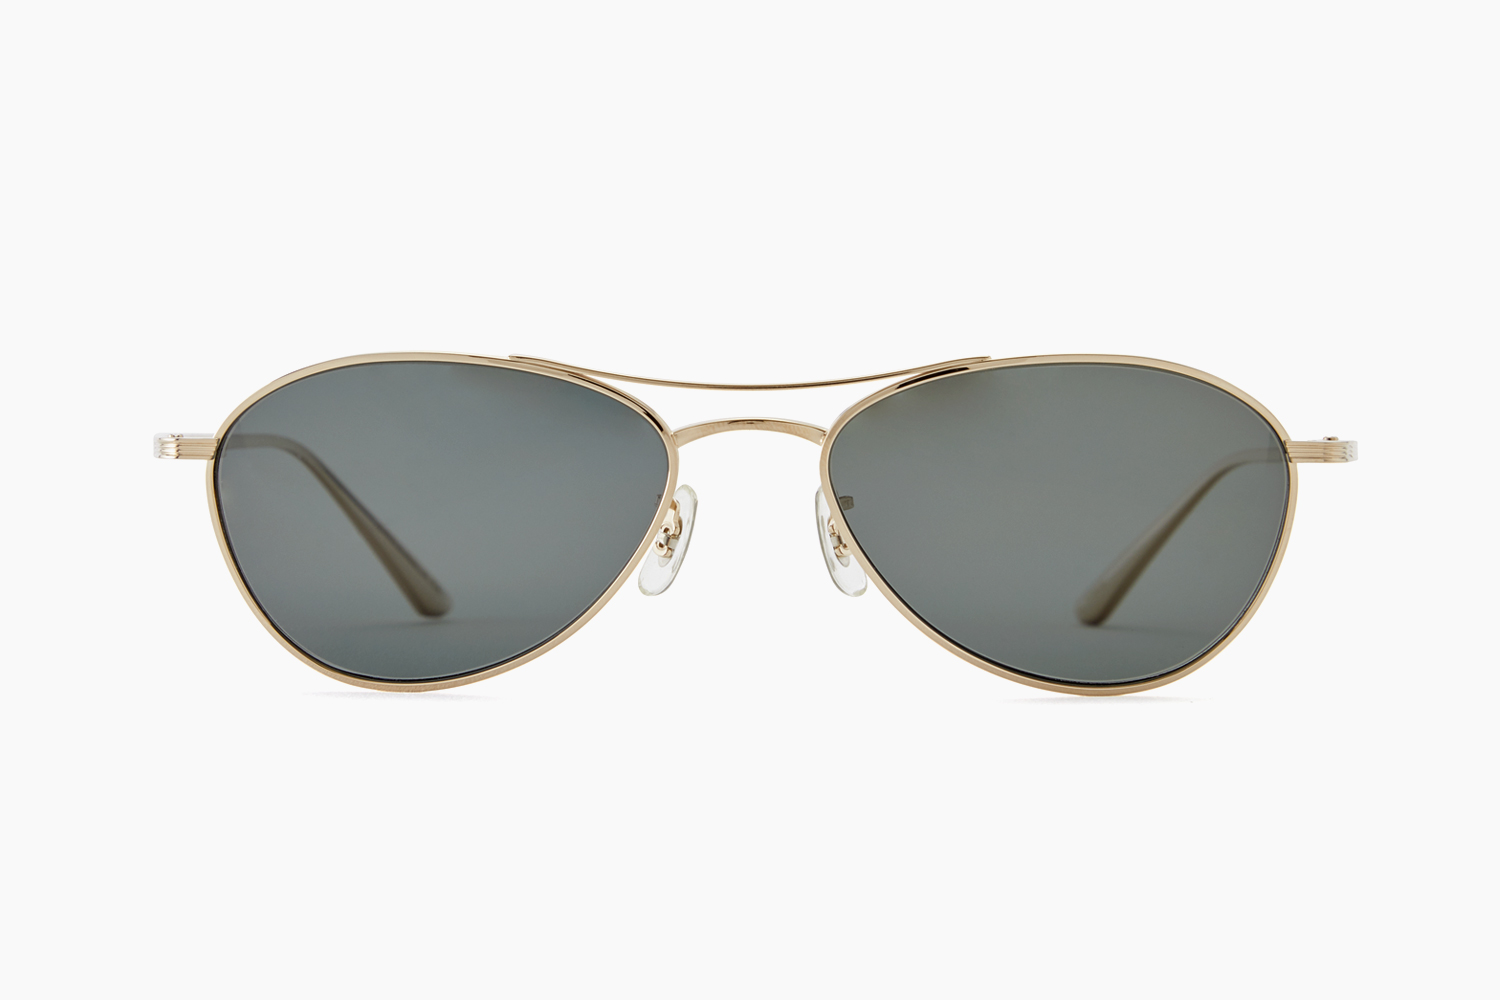 OLIVER PEOPLES THE ROW|AERO LA - 5292P2|OLIVER PEOPLES